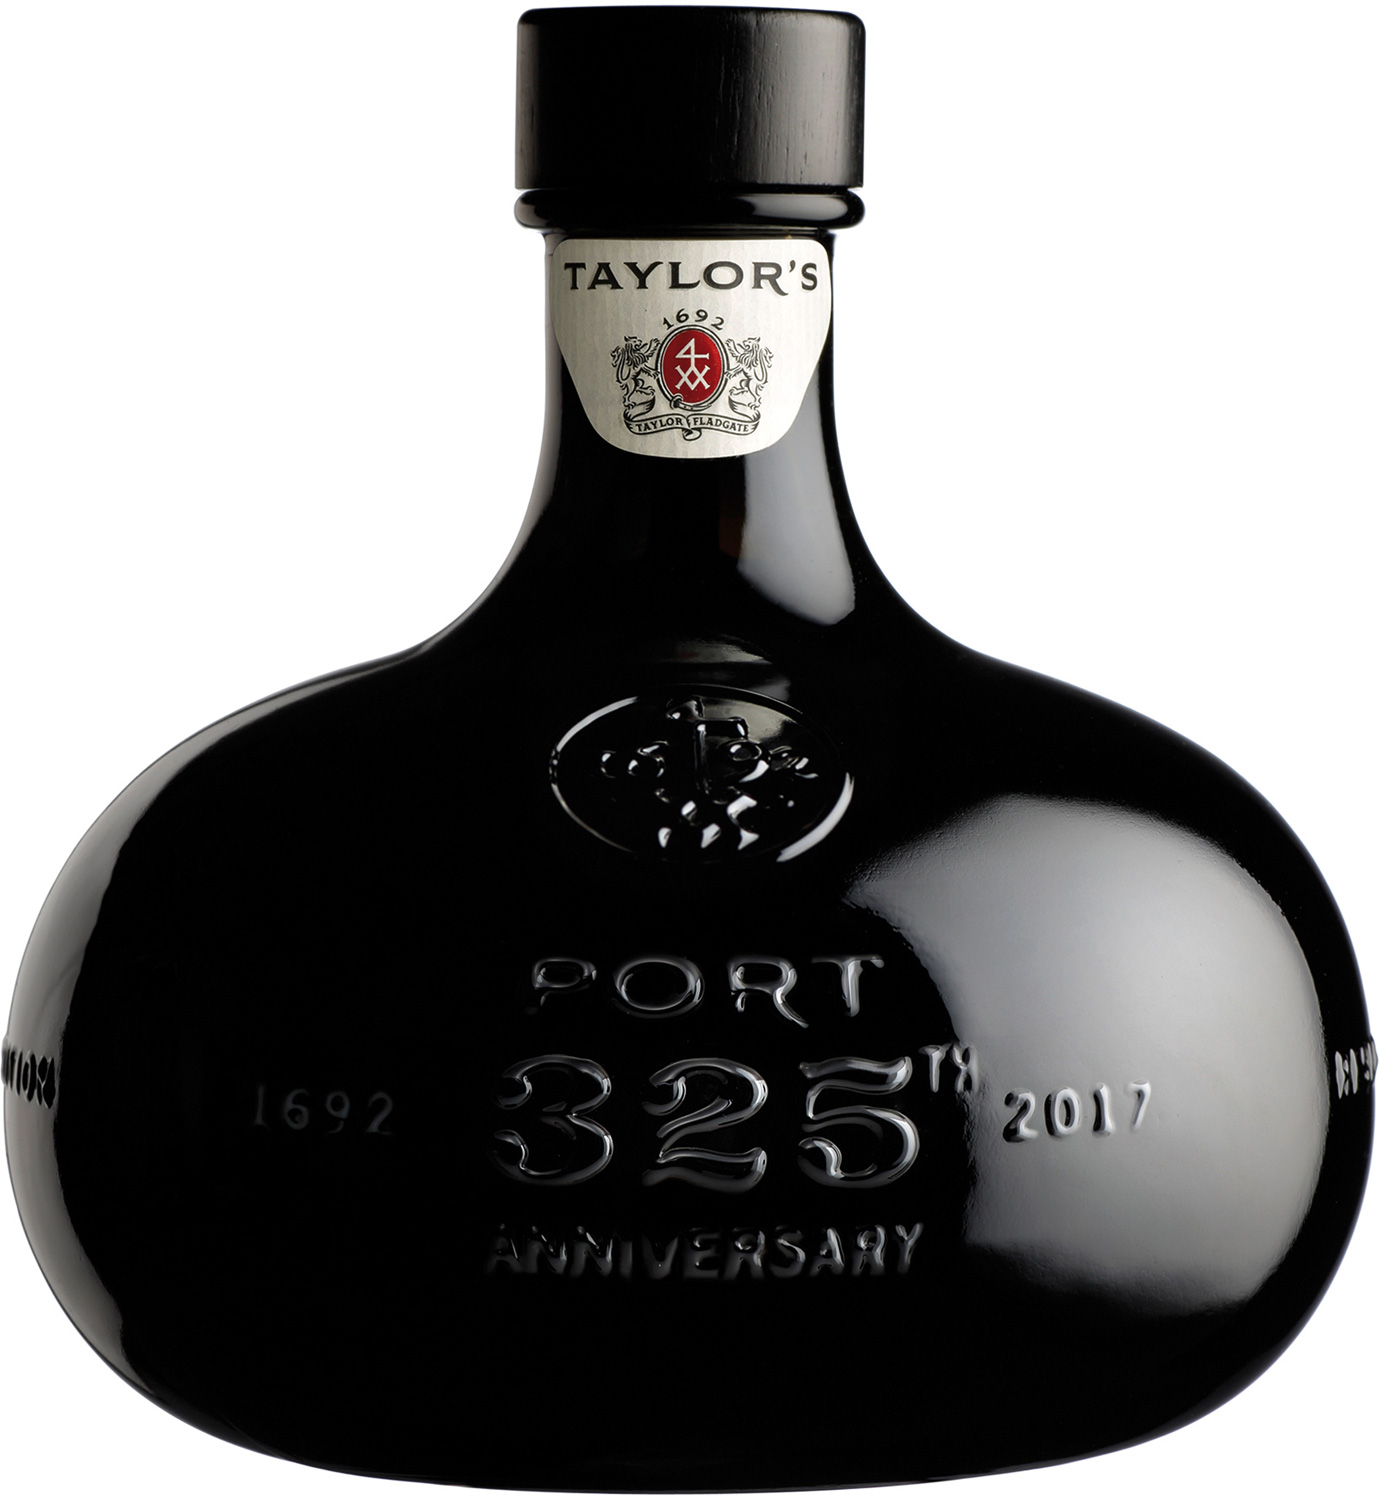 Taylor's 325th Anniversary Port